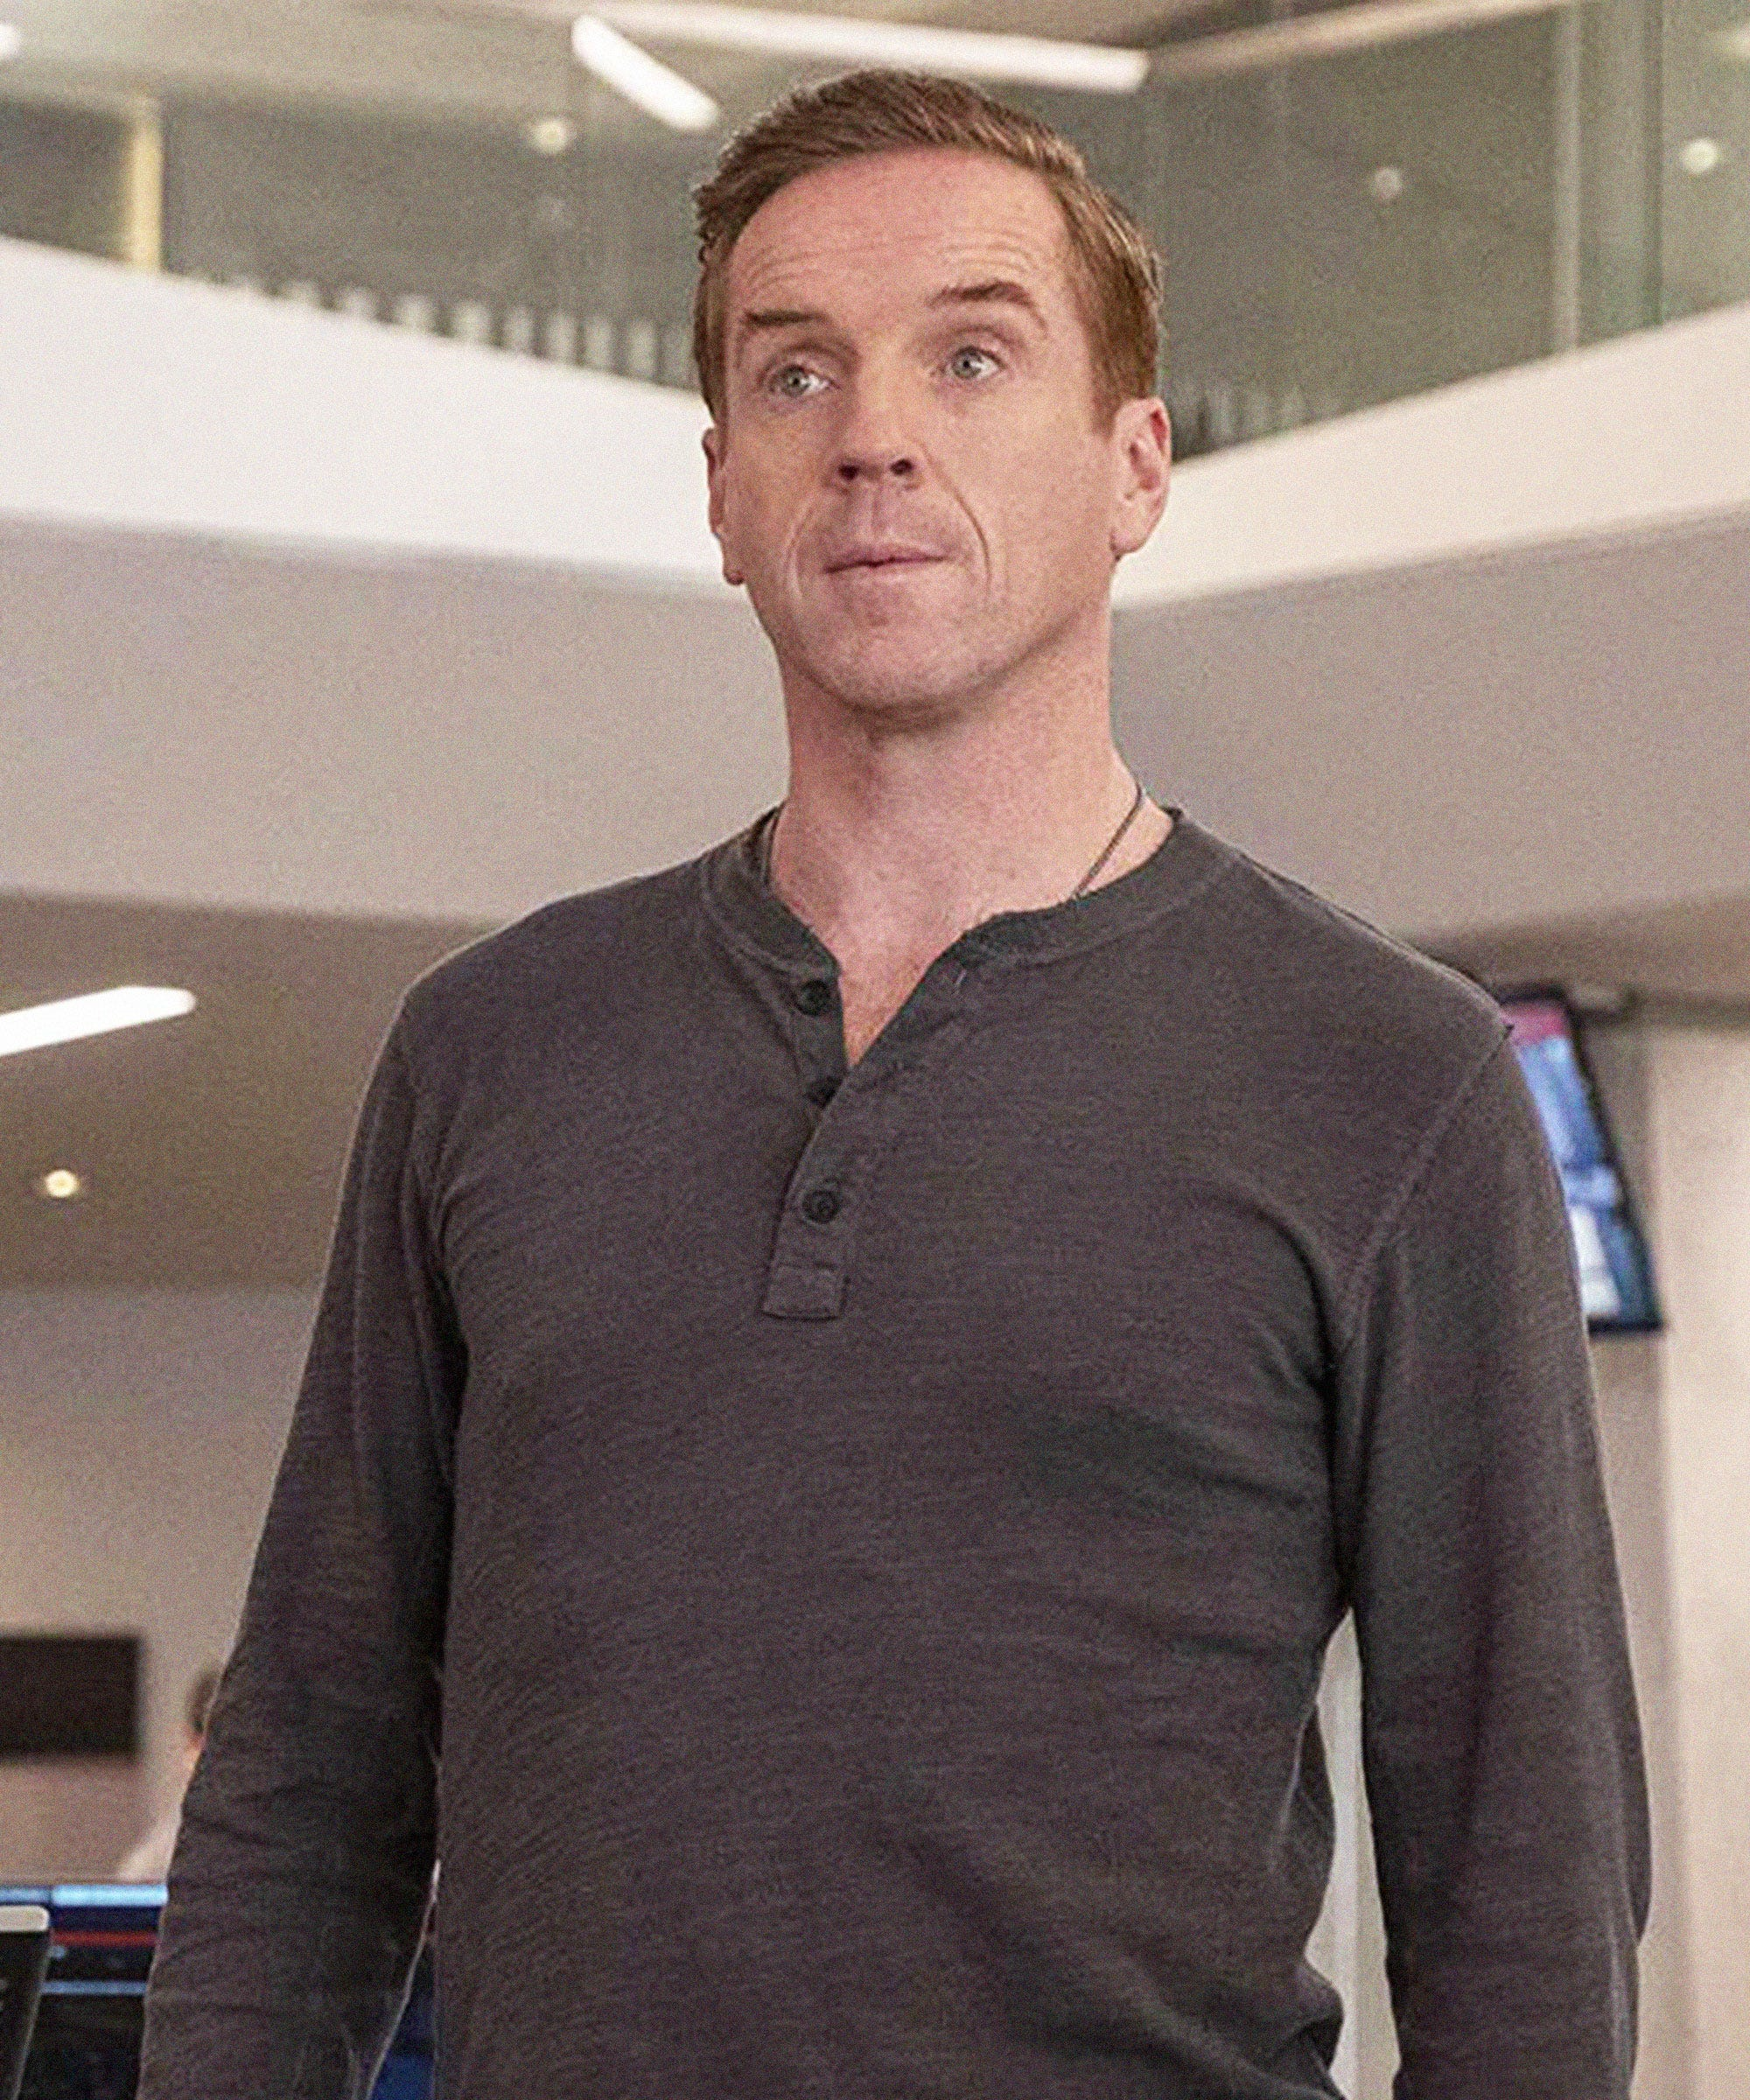 Is Bobby Axelrod Of Billions Based On A Real Person?